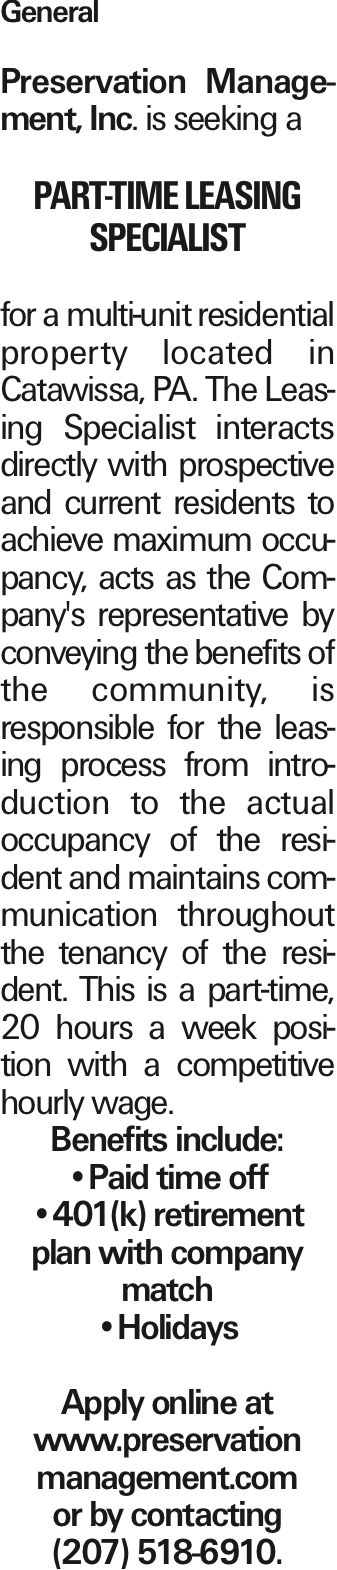 General Preservation Management, Inc. is seeking a part-time Leasing Specialist for a multi-unit residential property located in Catawissa, PA. The Leasing Specialist interacts directly with prospective and current residents to achieve maximum occupancy, acts as the Company's representative by conveying the benefits of the community, is responsible for the leasing process from introduction to the actual occupancy of the resident and maintains communication throughout the tenancy of the resident. This is a part-time, 20 hours a week position with a competitive hourly wage. Benefits include: --Paid time off --401(k) retirement plan with company match --Holidays Apply online at www.preservation management.com or by contacting (207) 518-6910. As published in the Press Enterprise.